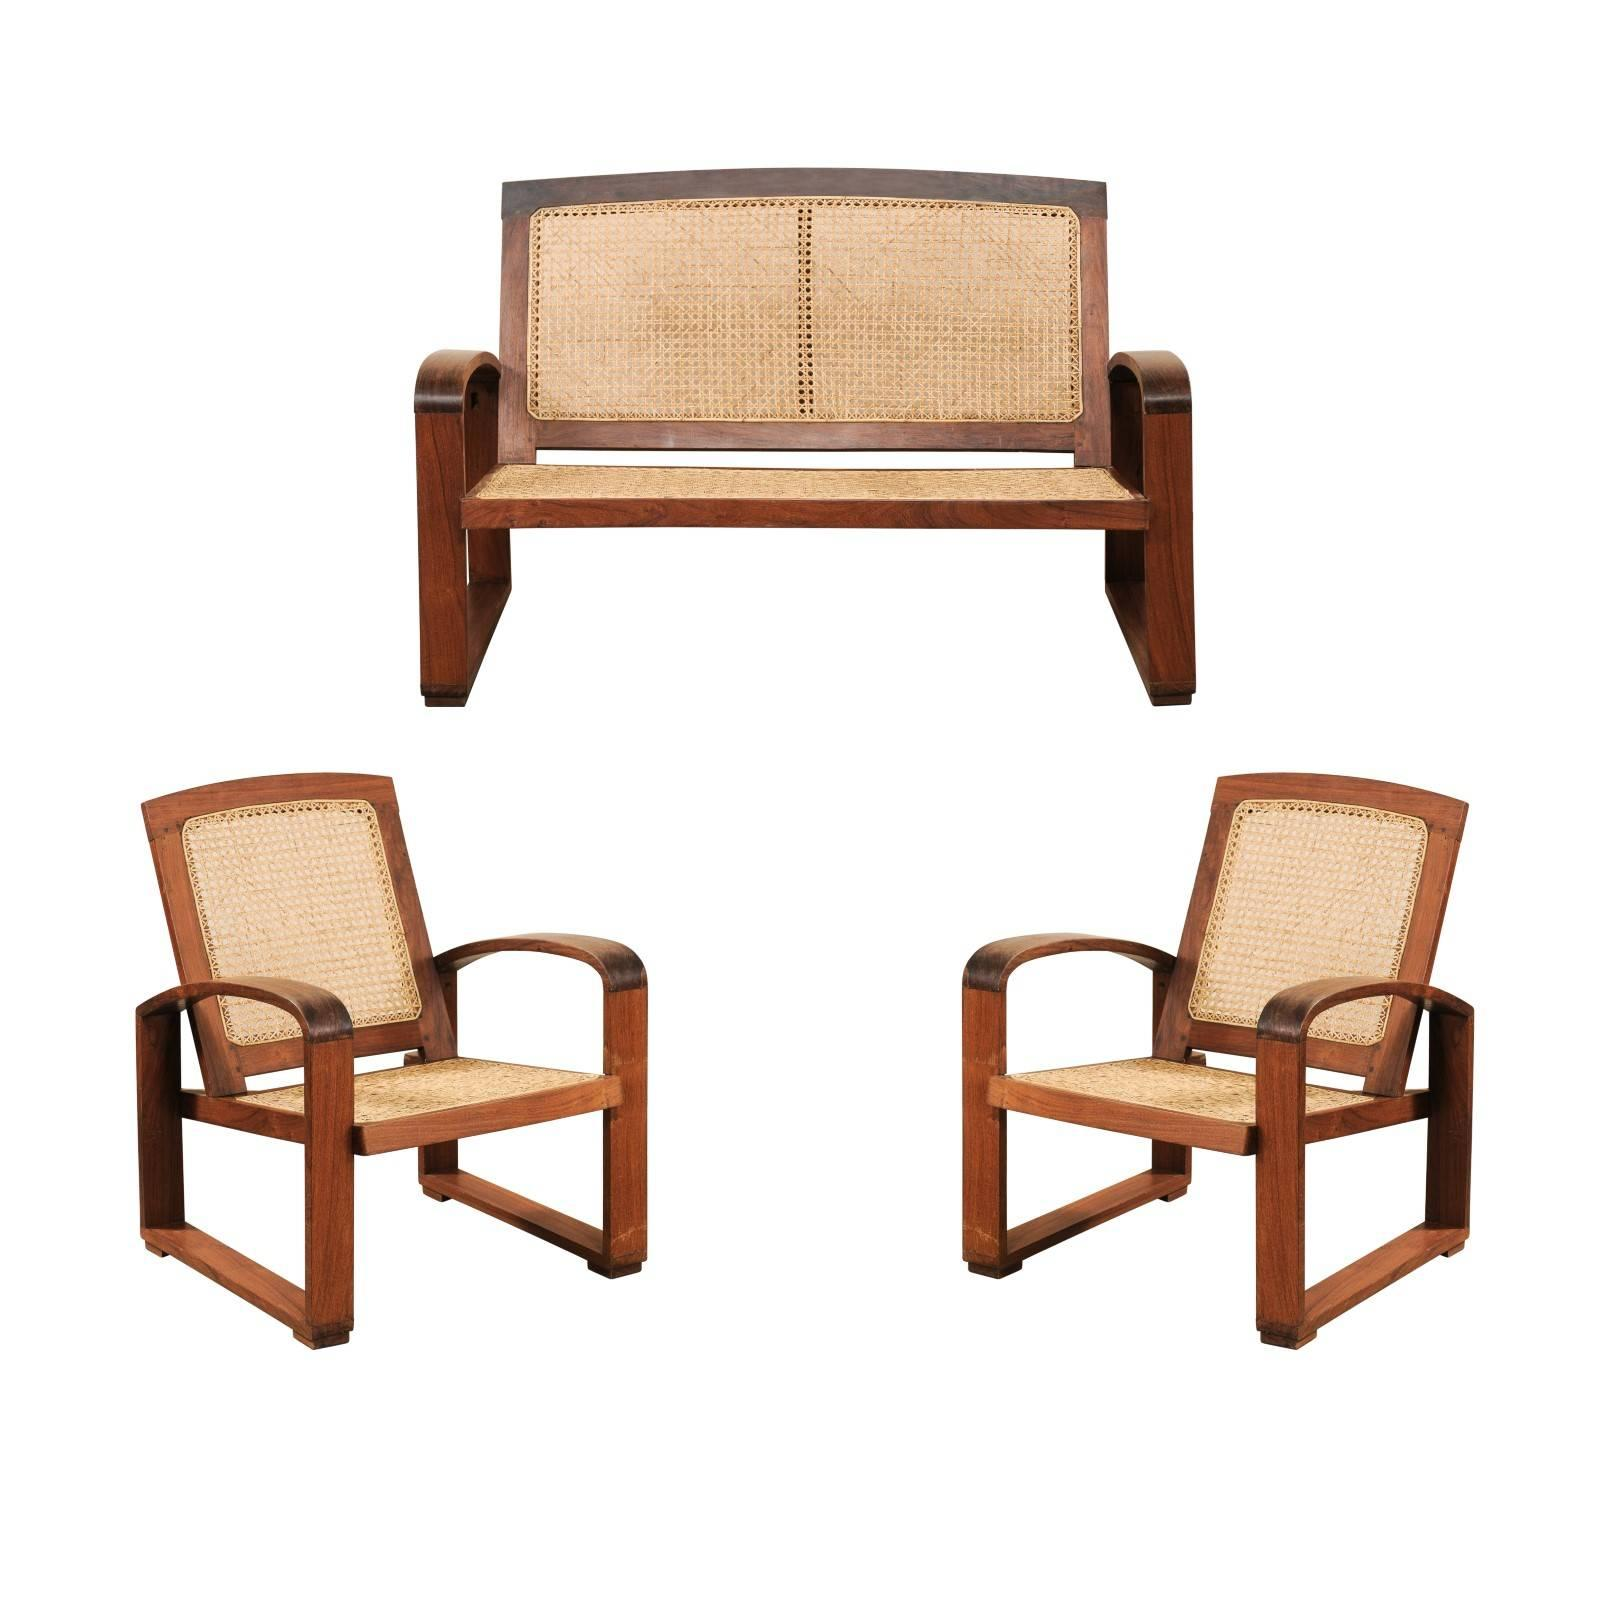 Vintage British Colonial Cane U0026 Wood 3 Piece Seating Set With Chairs U0026  Loveseat For